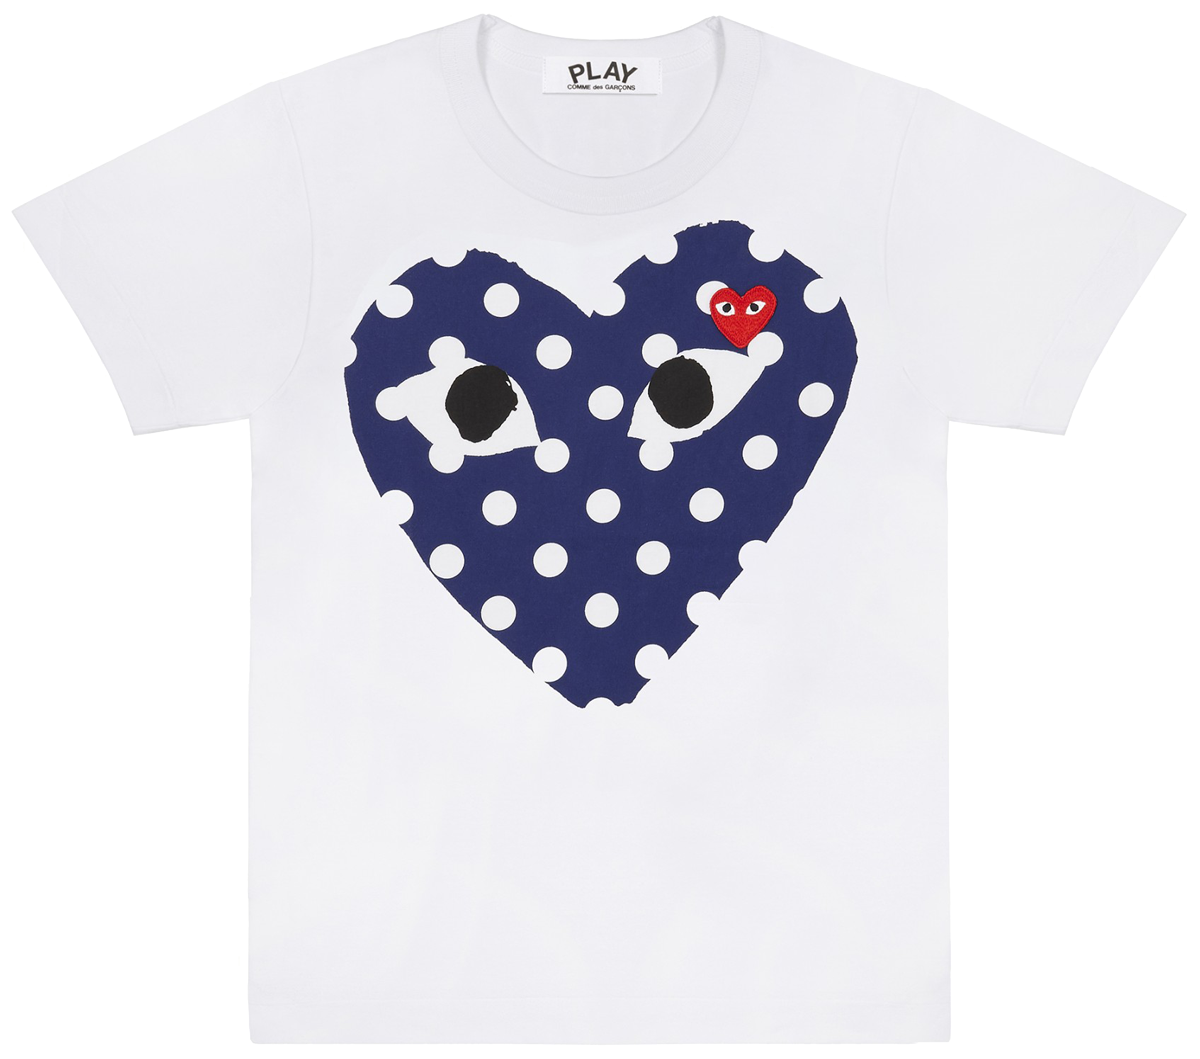 collection 2018 new play comme des garcons t shirts